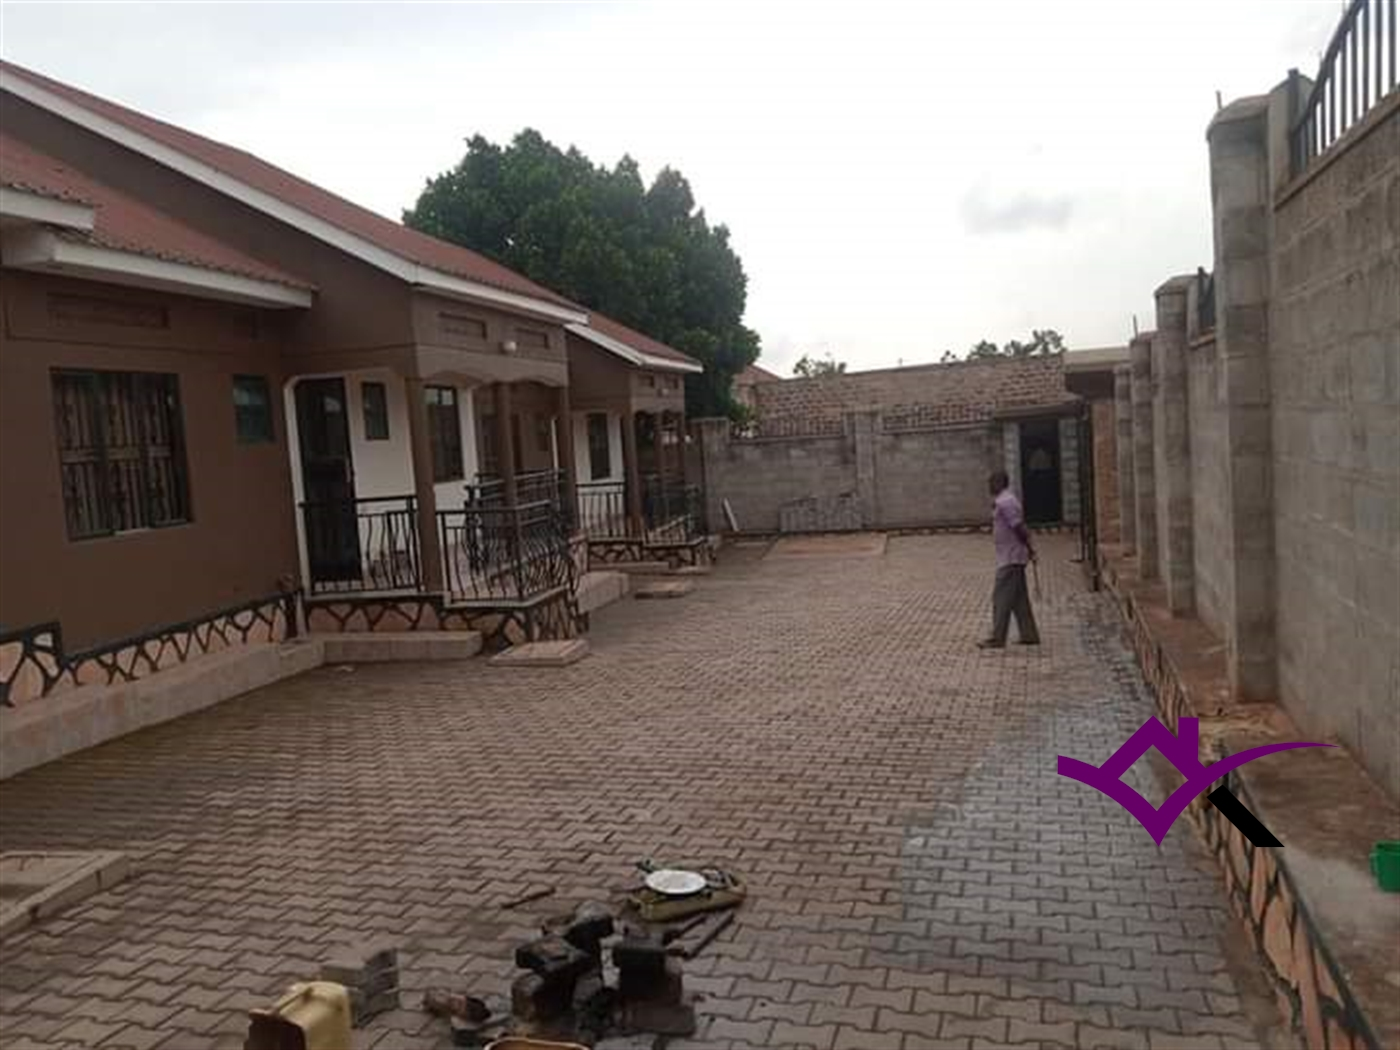 Vacation rental for sale in Bweyogerere Wakiso